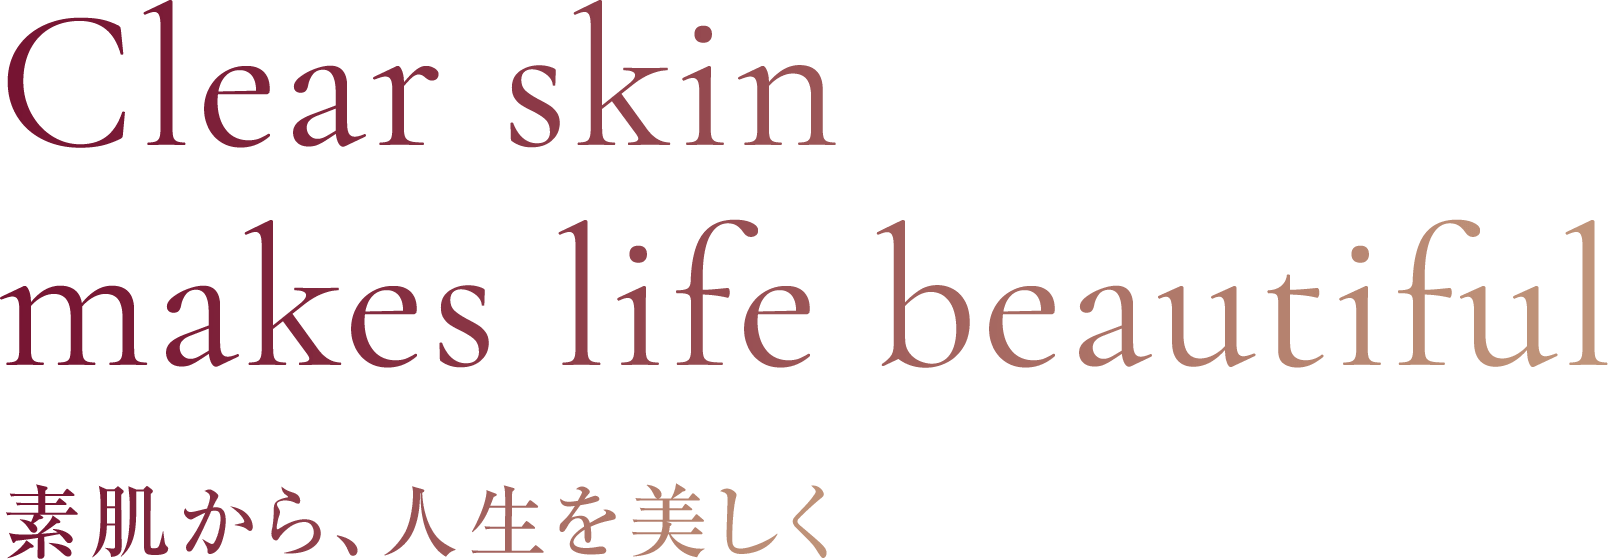 Clear skin makes life beautiful 素肌から、人生を美しく